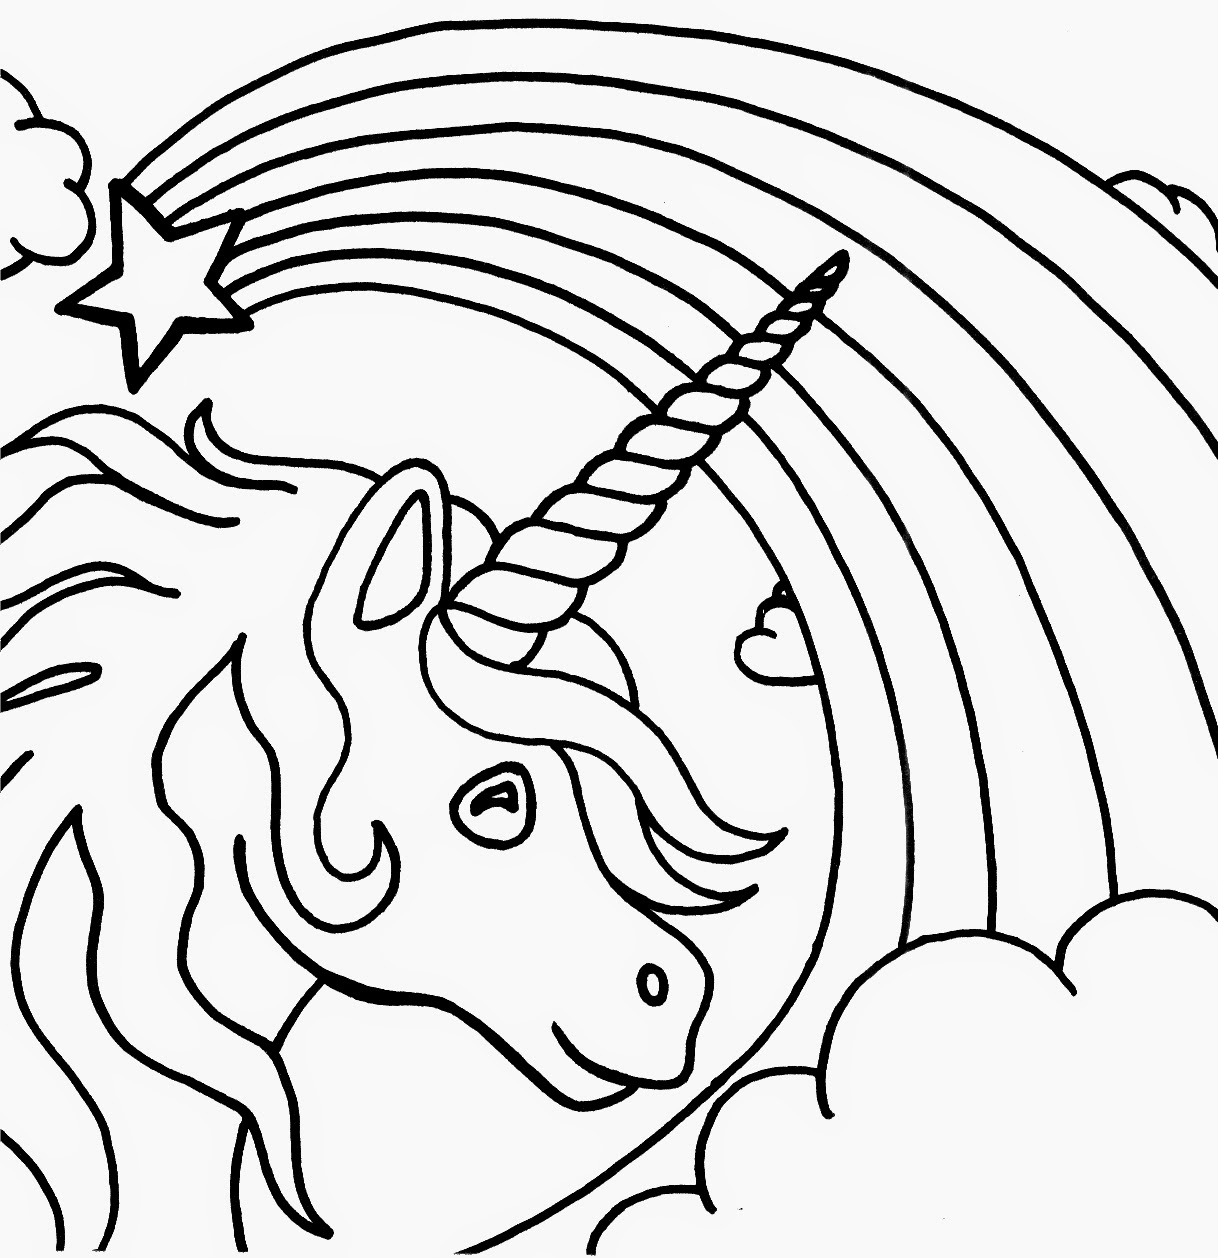 coloring worksheets unicorn downloadable unicorn colouring page michael o39mara books coloring worksheets unicorn